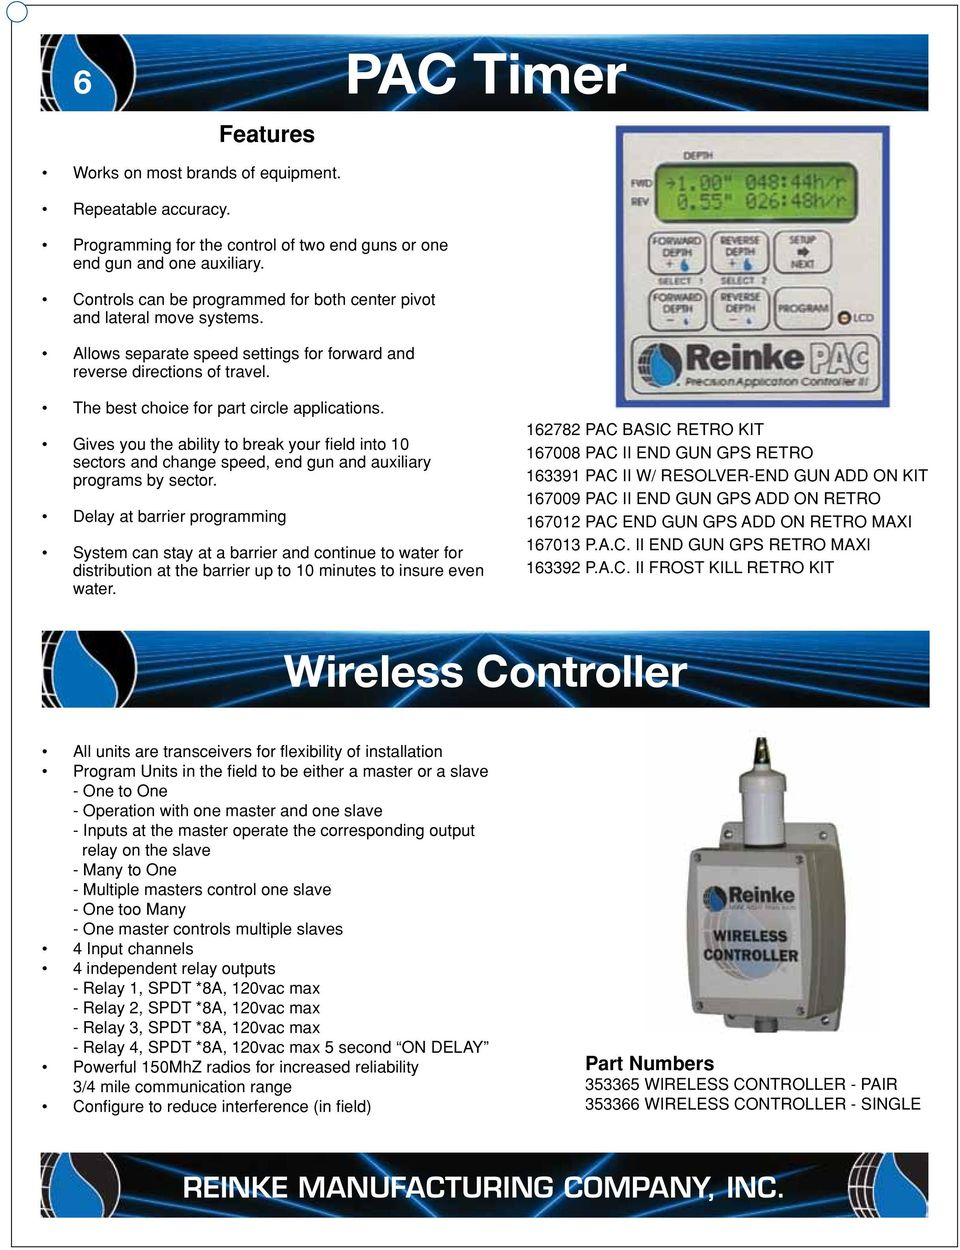 Parts Catalog Insist On The Best Genuine Reinke Repair From Valley Center Pivot Wiring Diagram Gives You Ability To Break Your Field Into 10 Sectors And Change Speed End